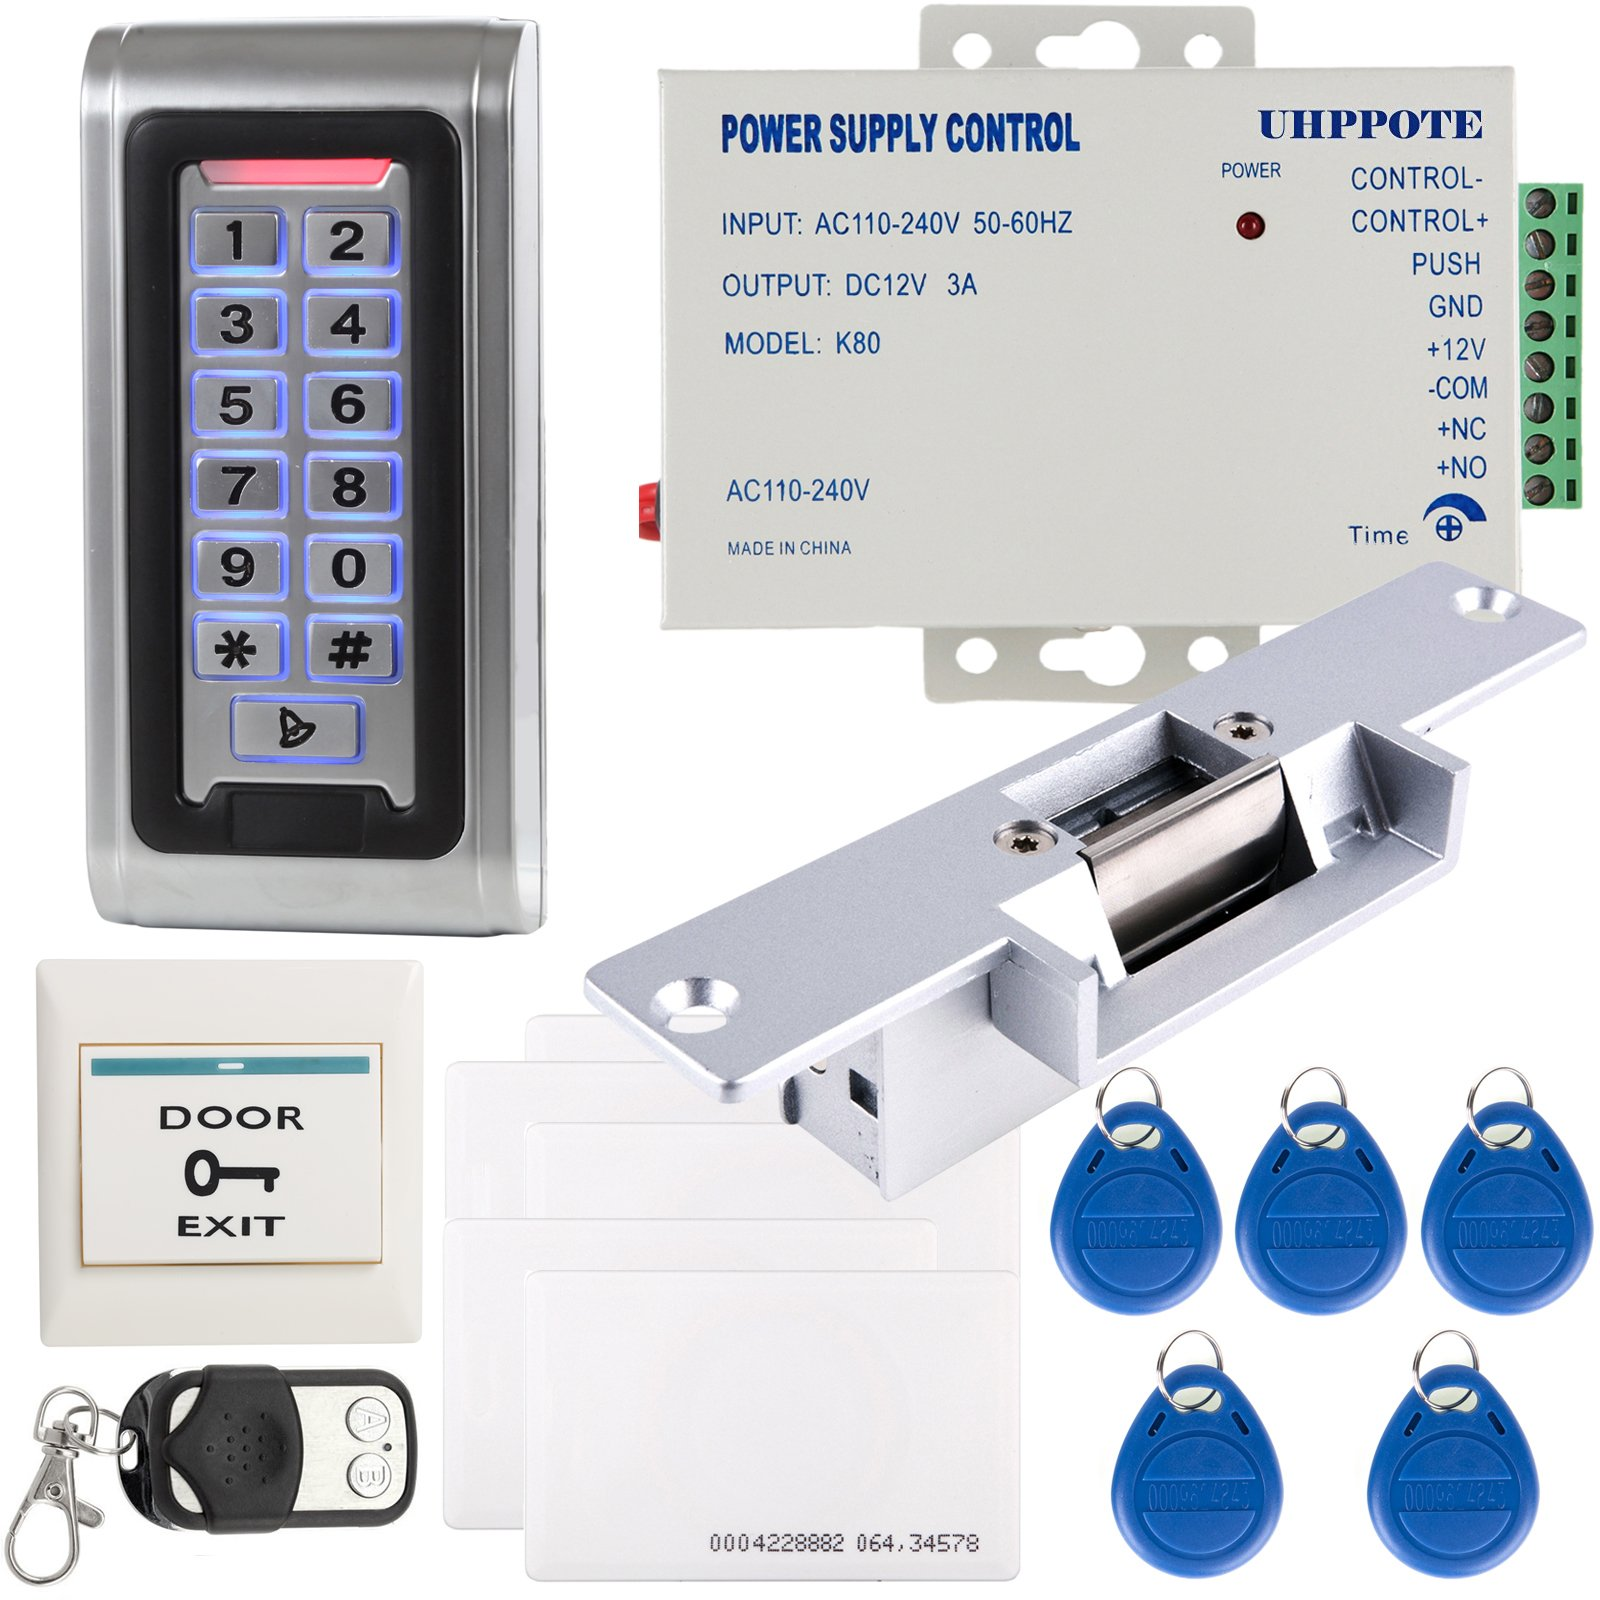 UHPPOTE Full Complete Waterproof Metal Case Stand-alone Access Control Set Wiegand 26 Bit With Electric Strike Lock